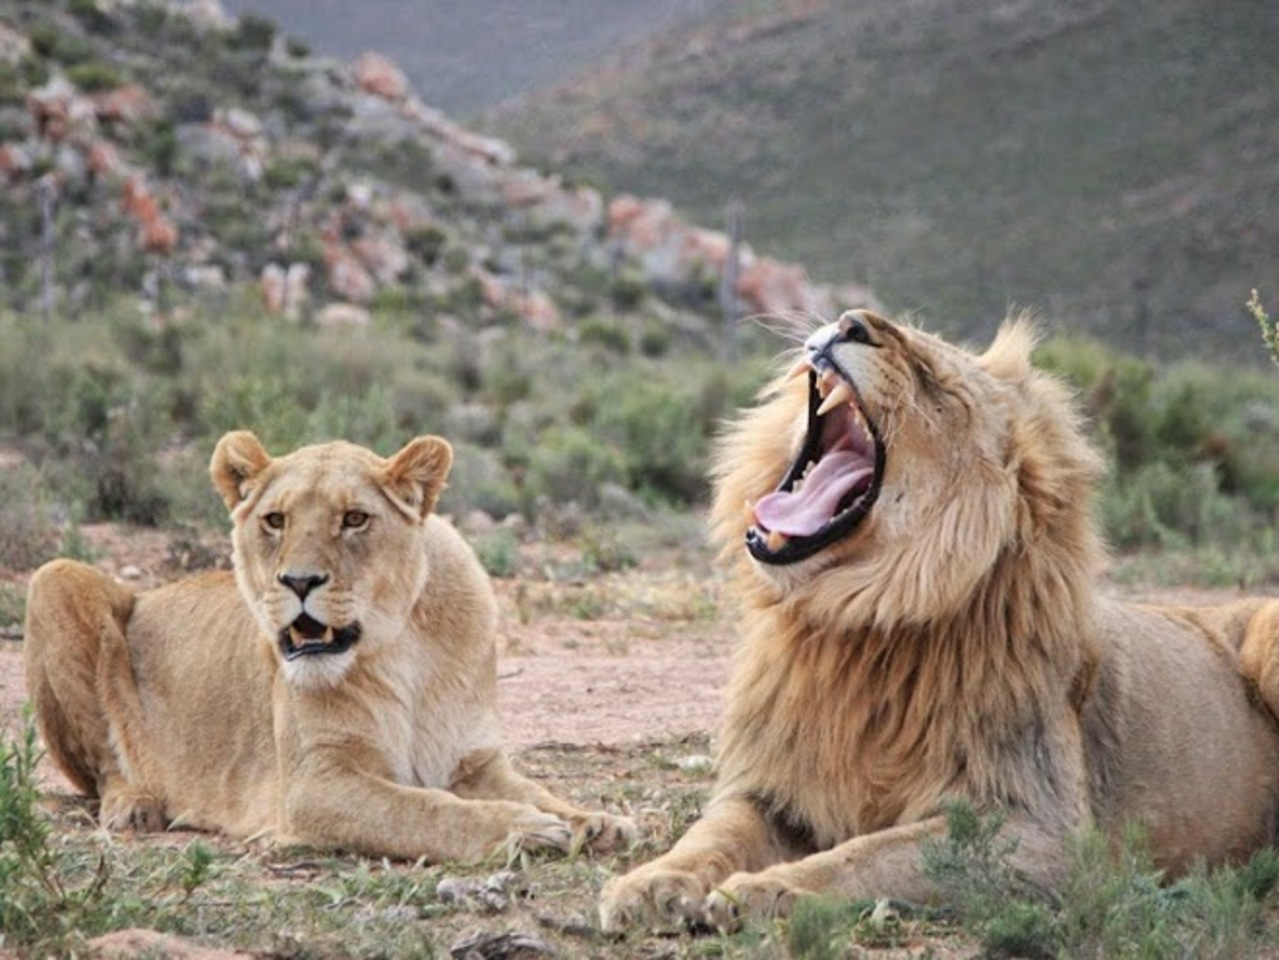 Meet the king of the Jungle - Lion